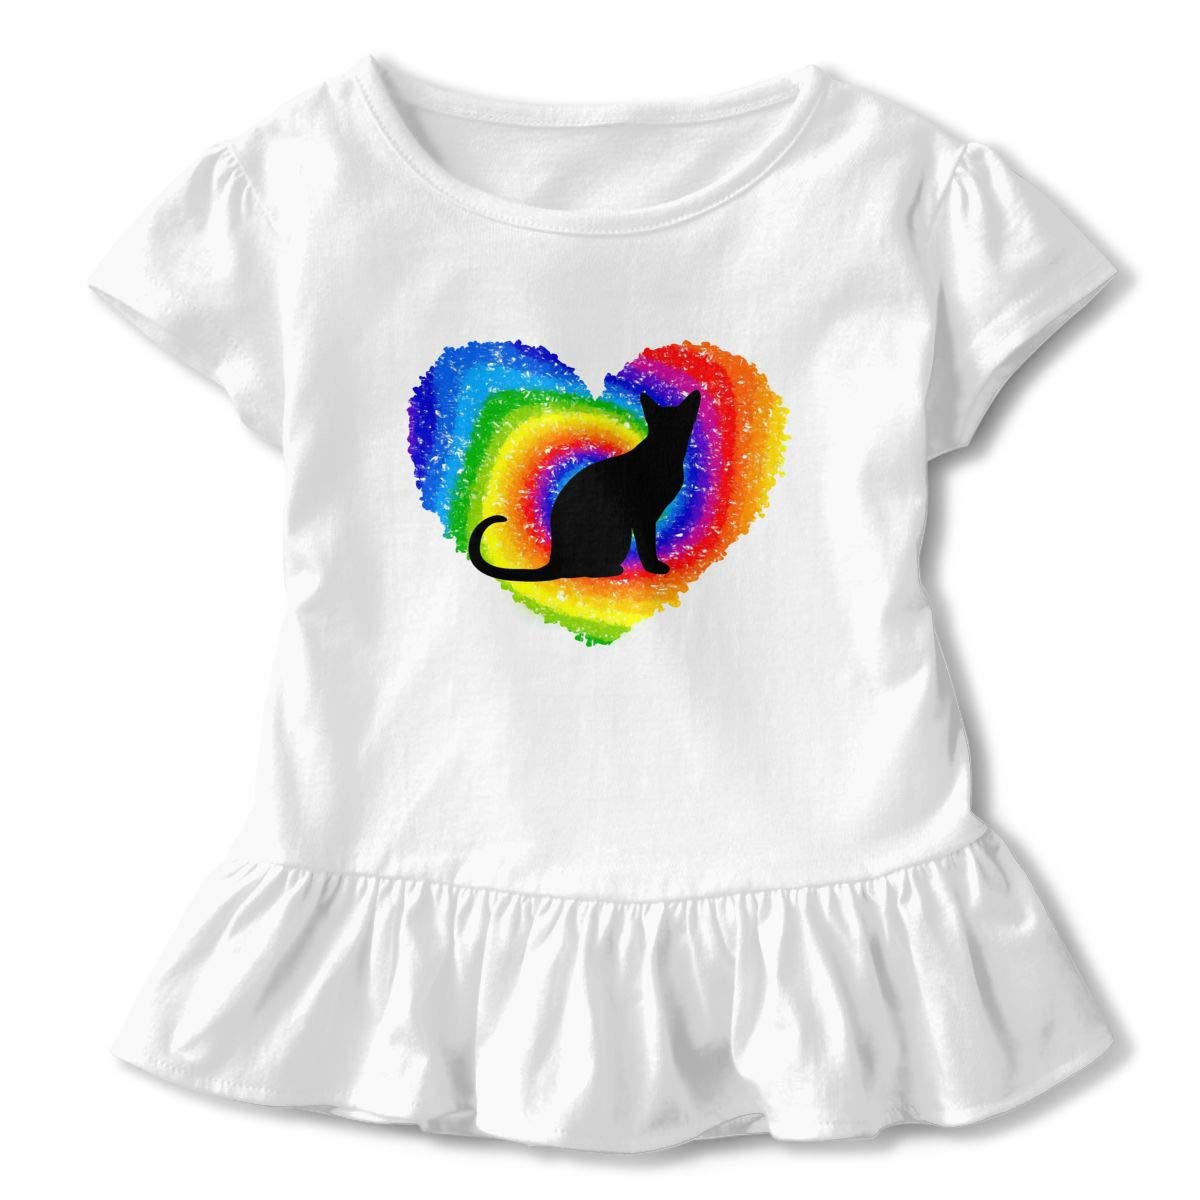 Rainbow Cats LGBT Toddler Baby Girls Short Sleeve Ruffle T-Shirt